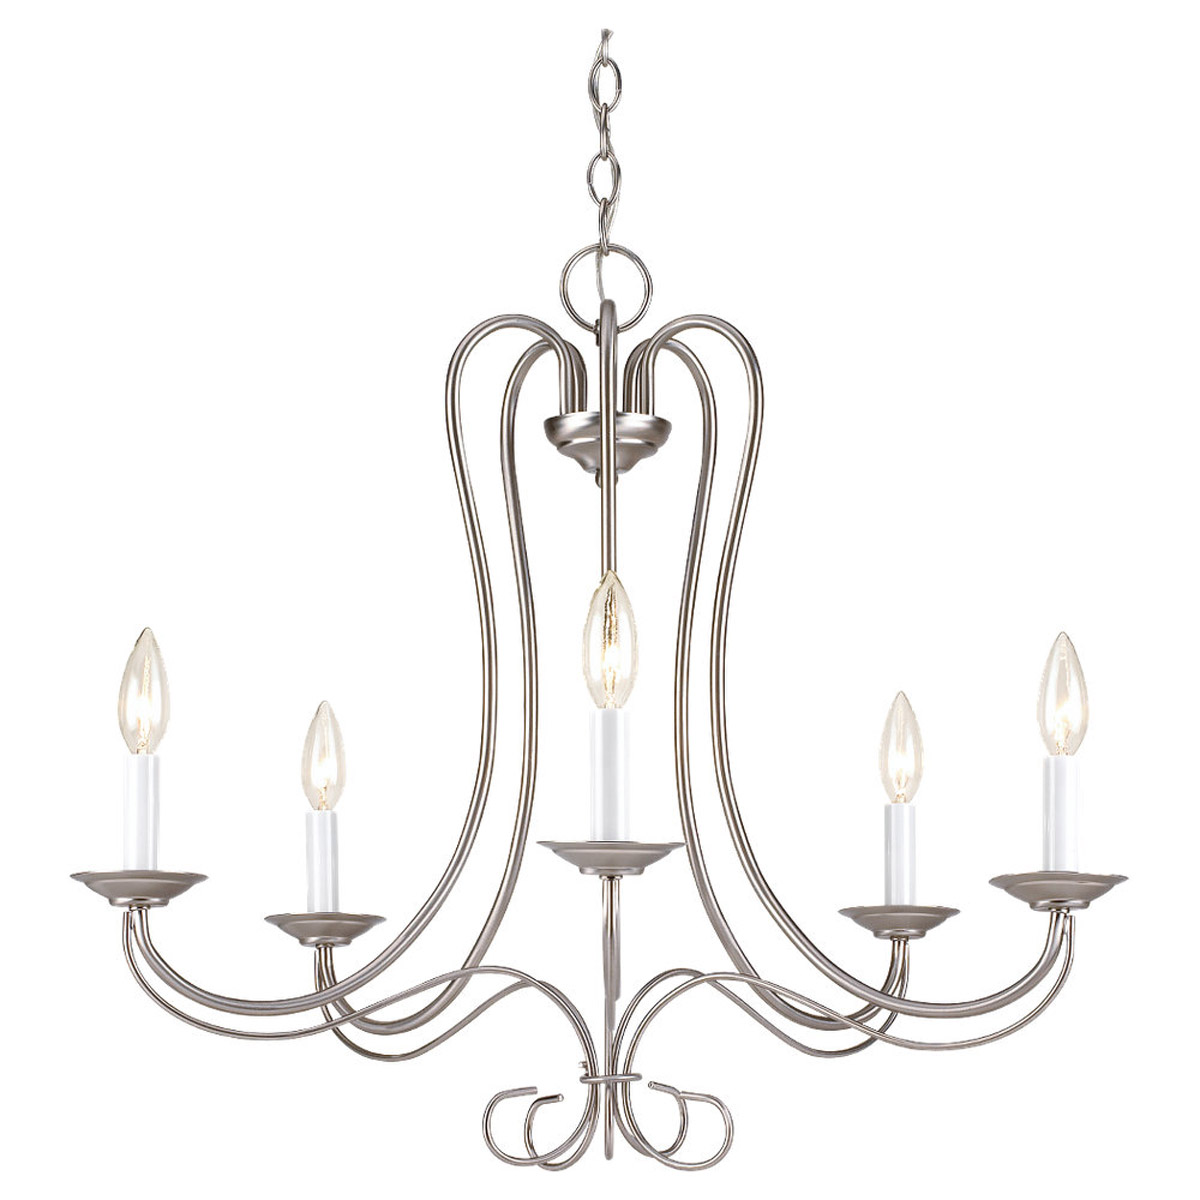 Sea Gull Lighting Traditional 5 Light Chandelier in Brushed Nickel 3116-962